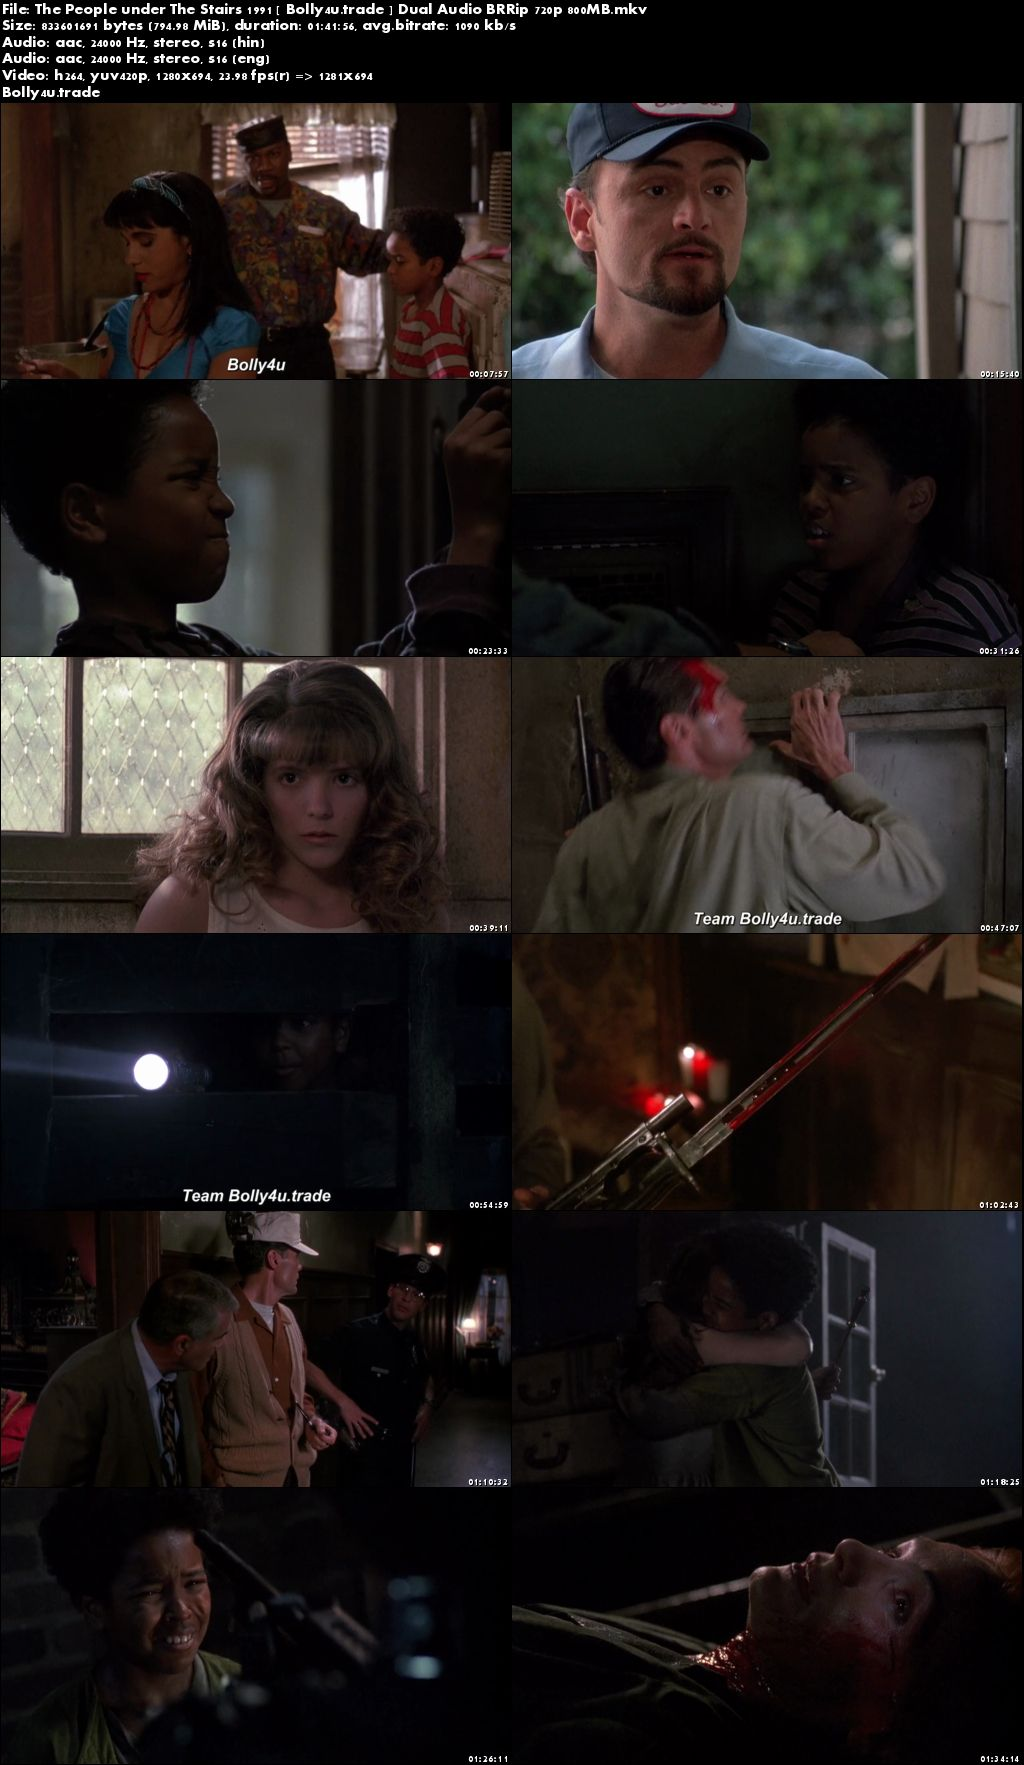 The People Under The Stairs 1991 BRRip 350MB Hindi Dual Audio 480p Download